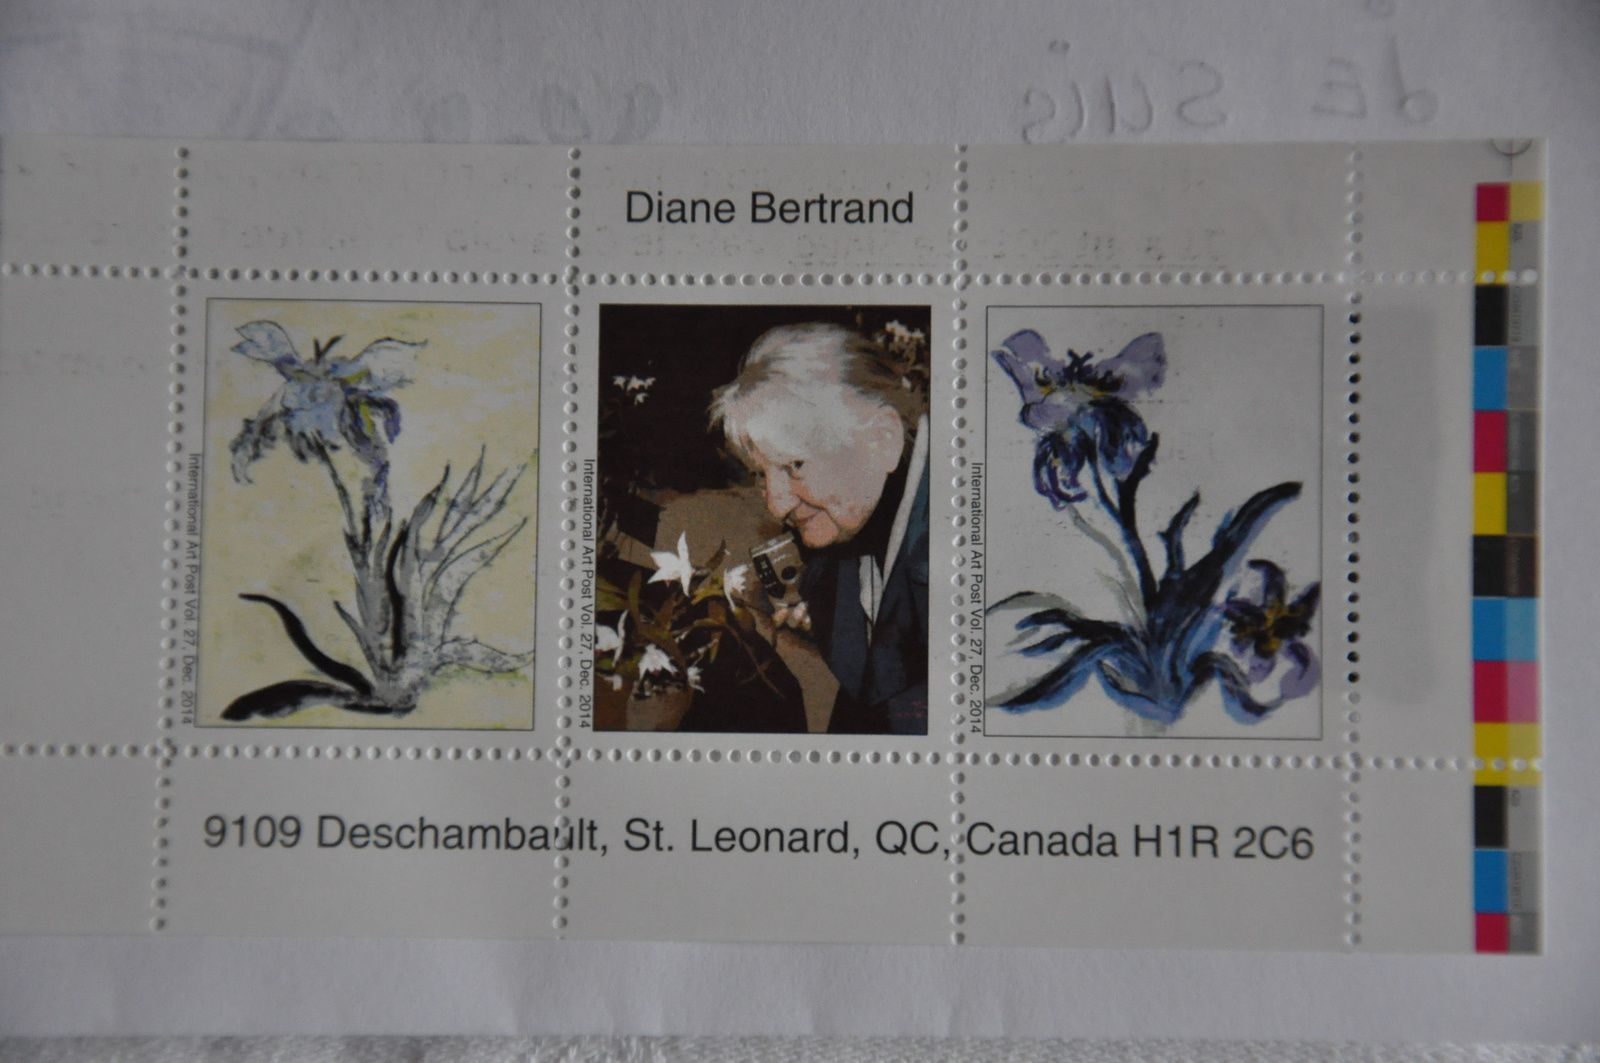 Thank you very much to Diane Bertrand from CANADA!